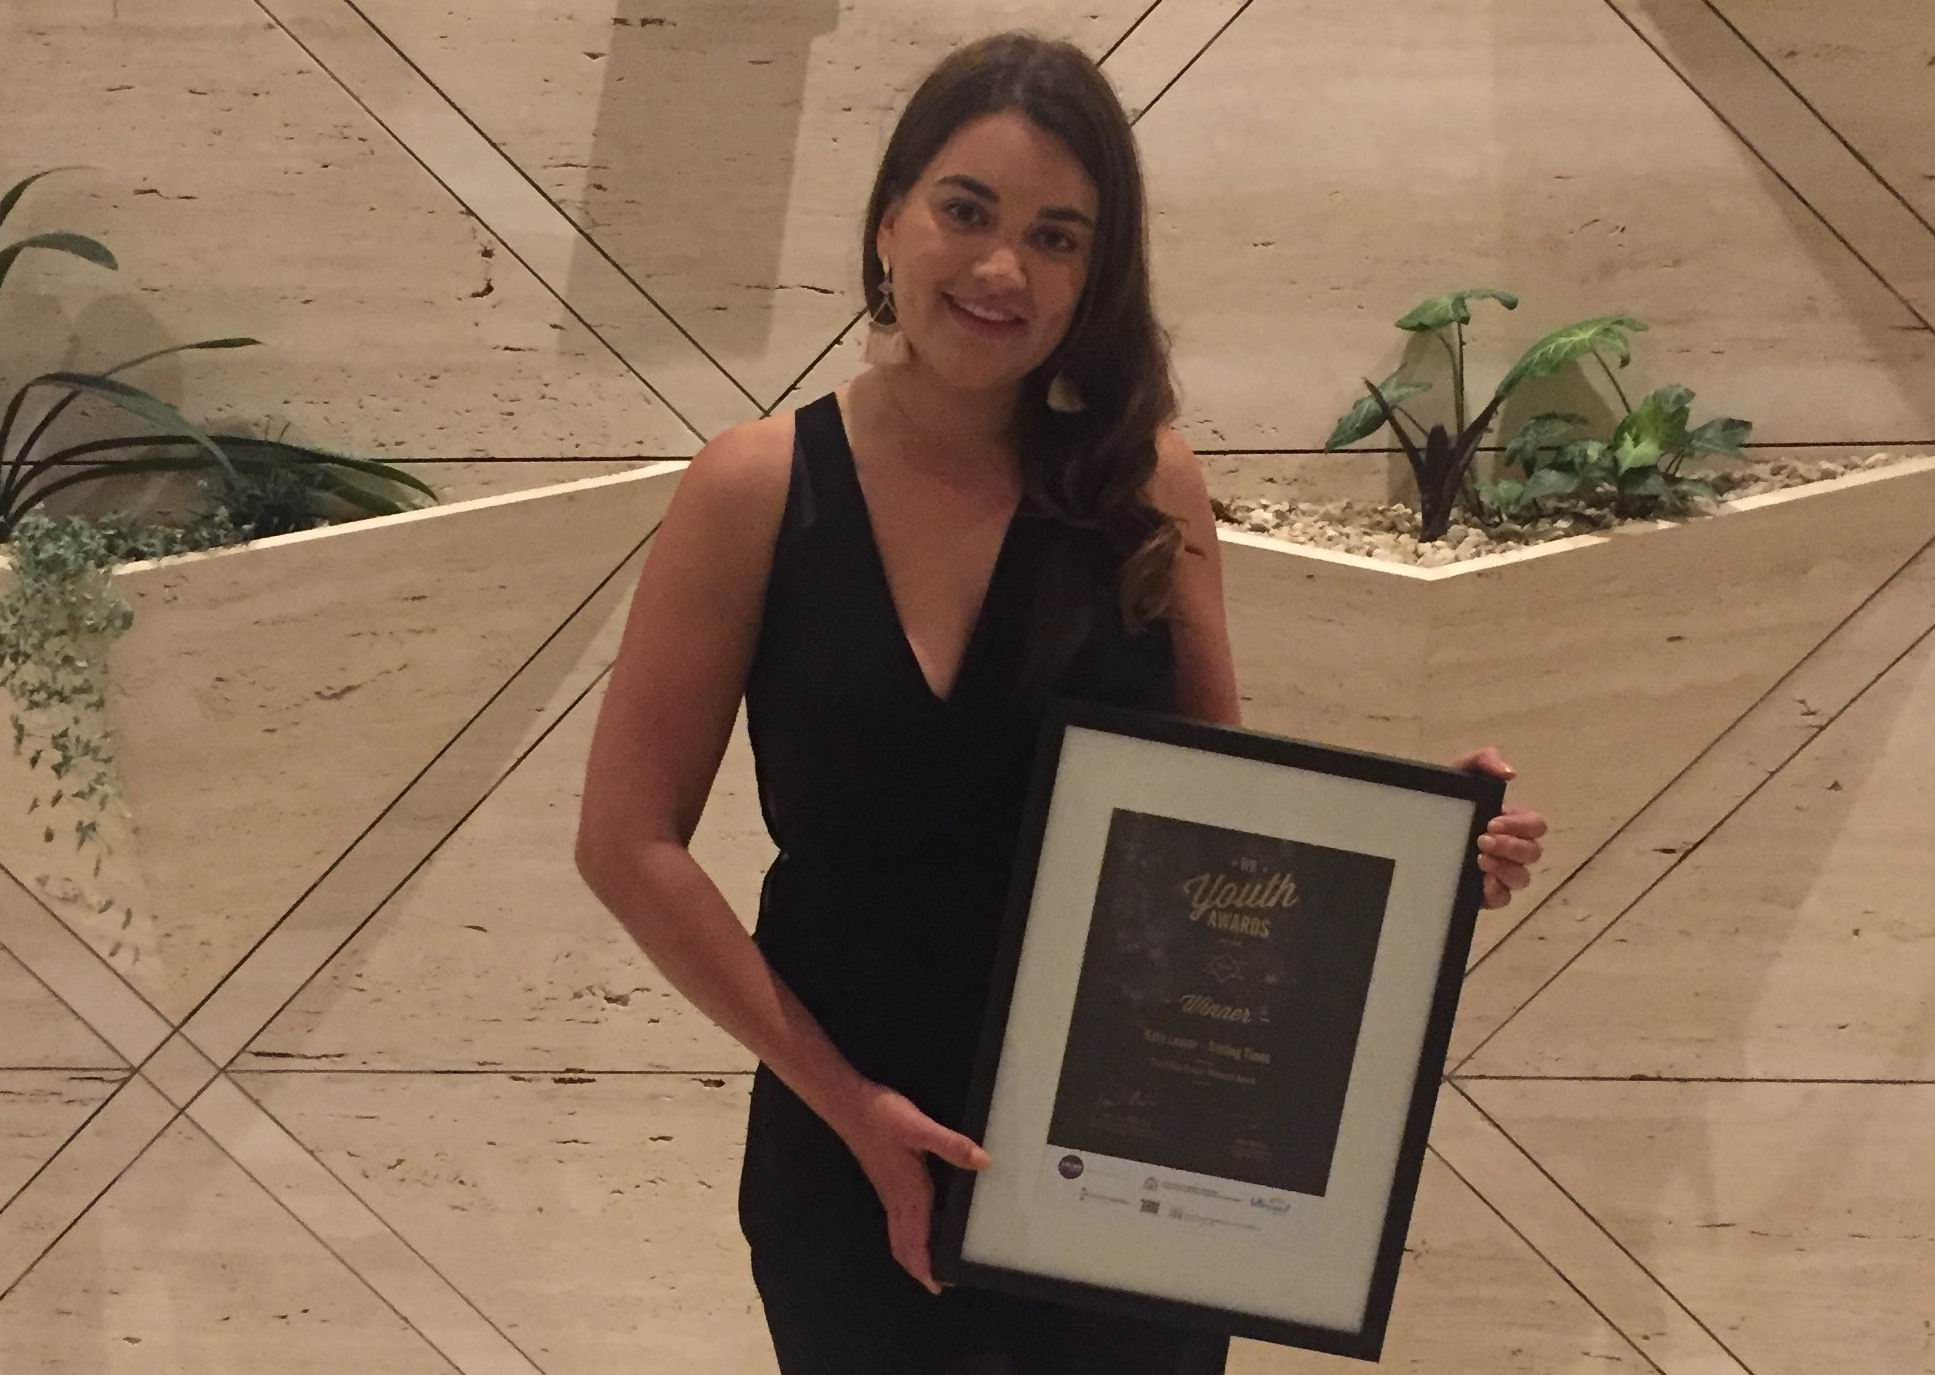 Kate Leaver with her WA Youth Award.